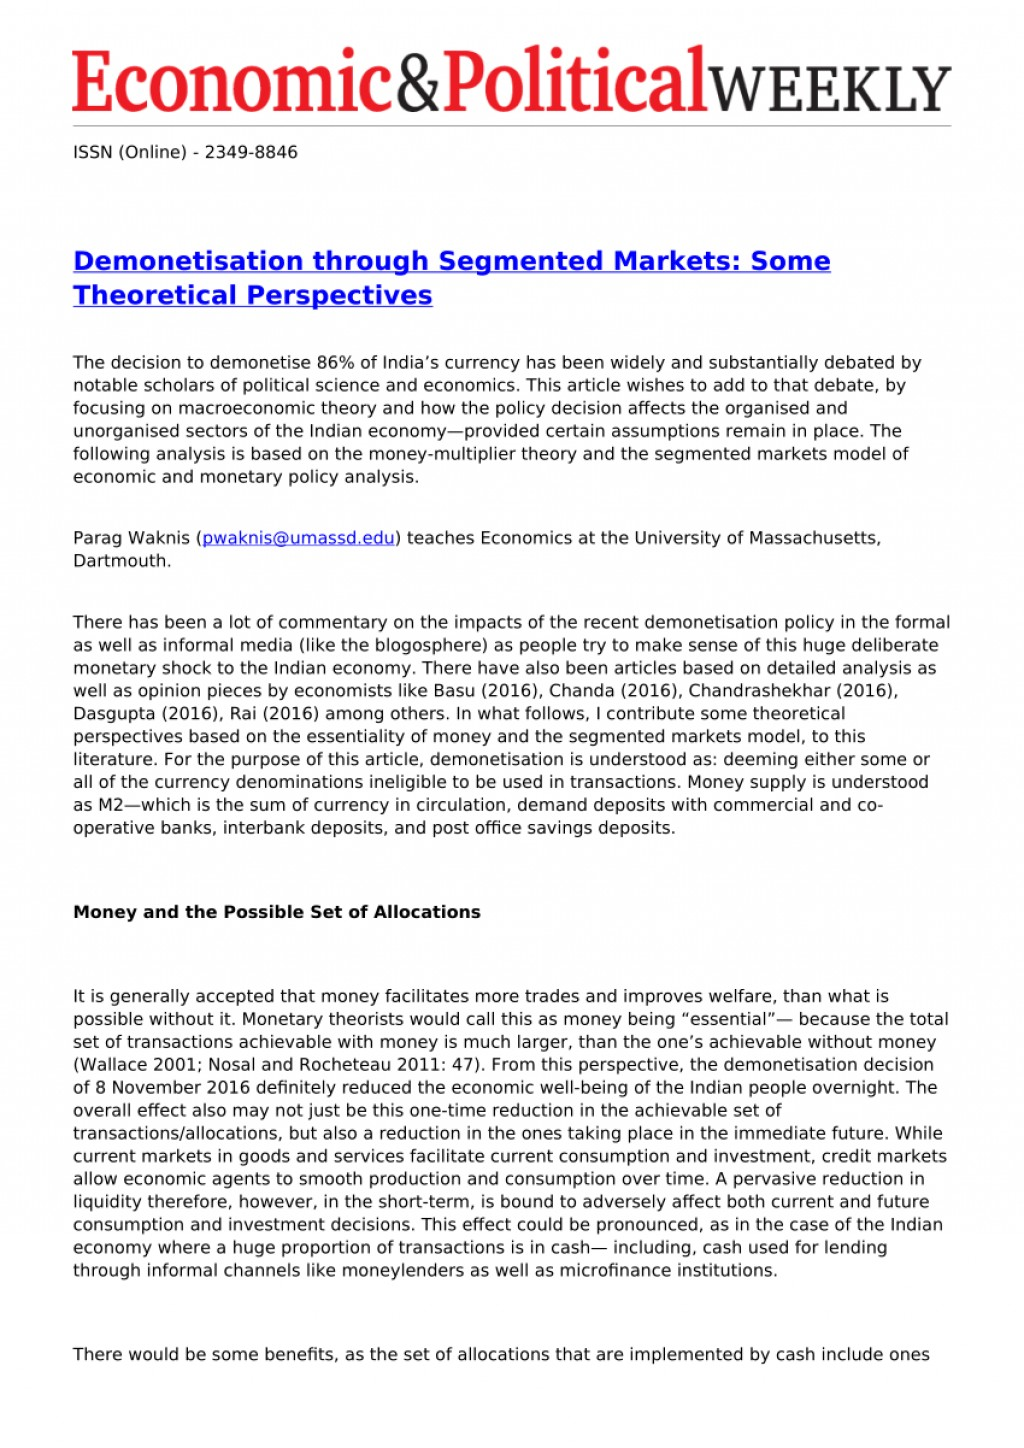 003 Largepreview Research Paper Demonetization And Its Impact On Indian Frightening Economy Large